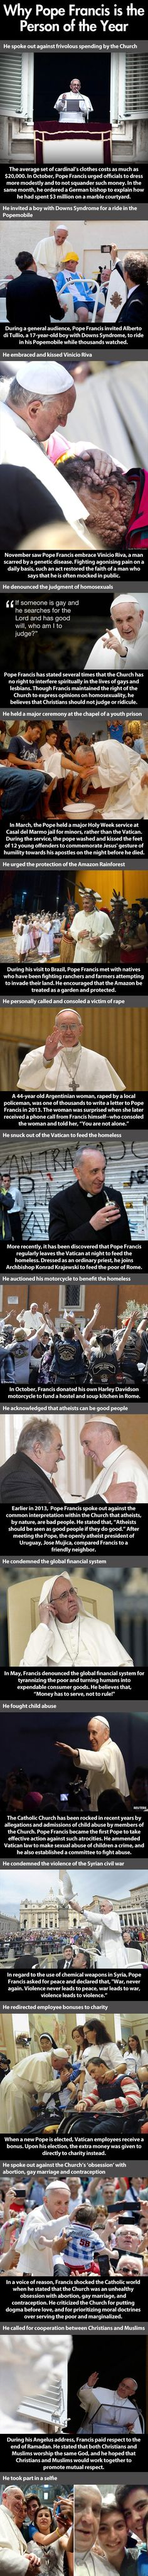 Here are some amazing reasons why Pope Francs was named person of the year by TIME magazine.